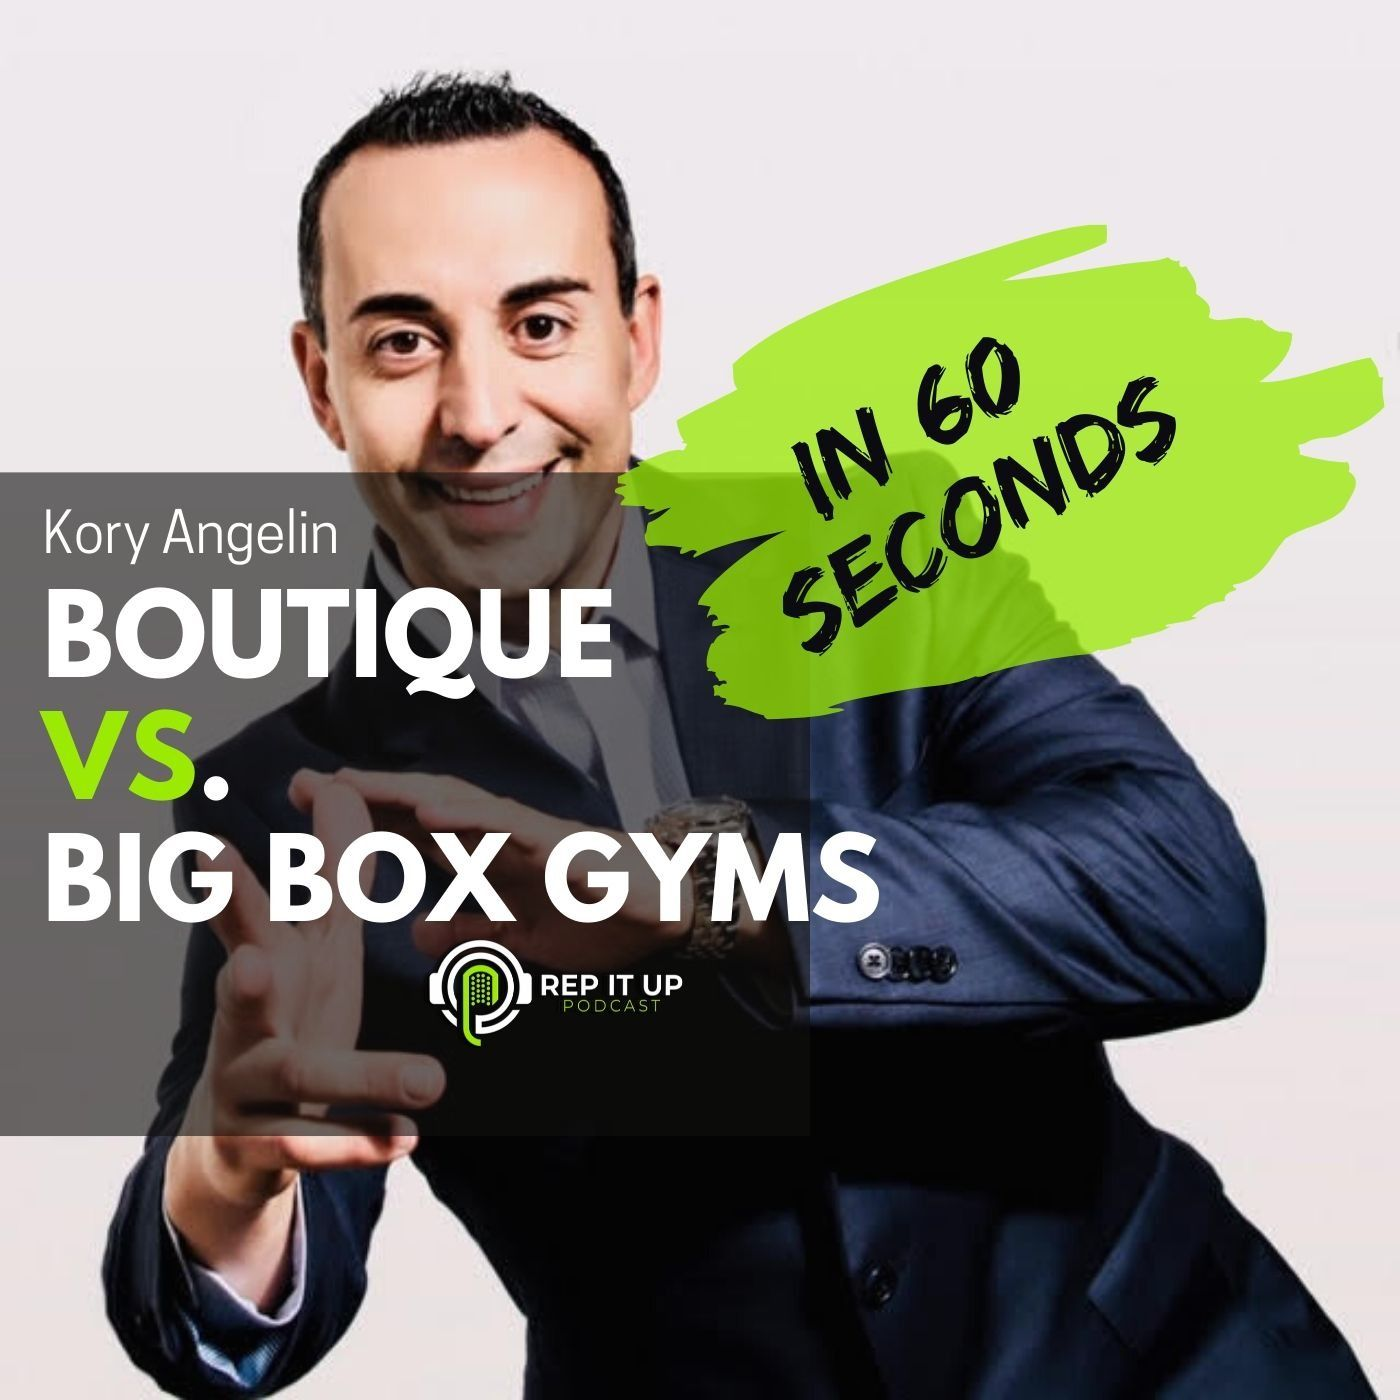 REP IT UP IN 60 SEC.: BOUTIQUE VS. BIG BOX GYMS